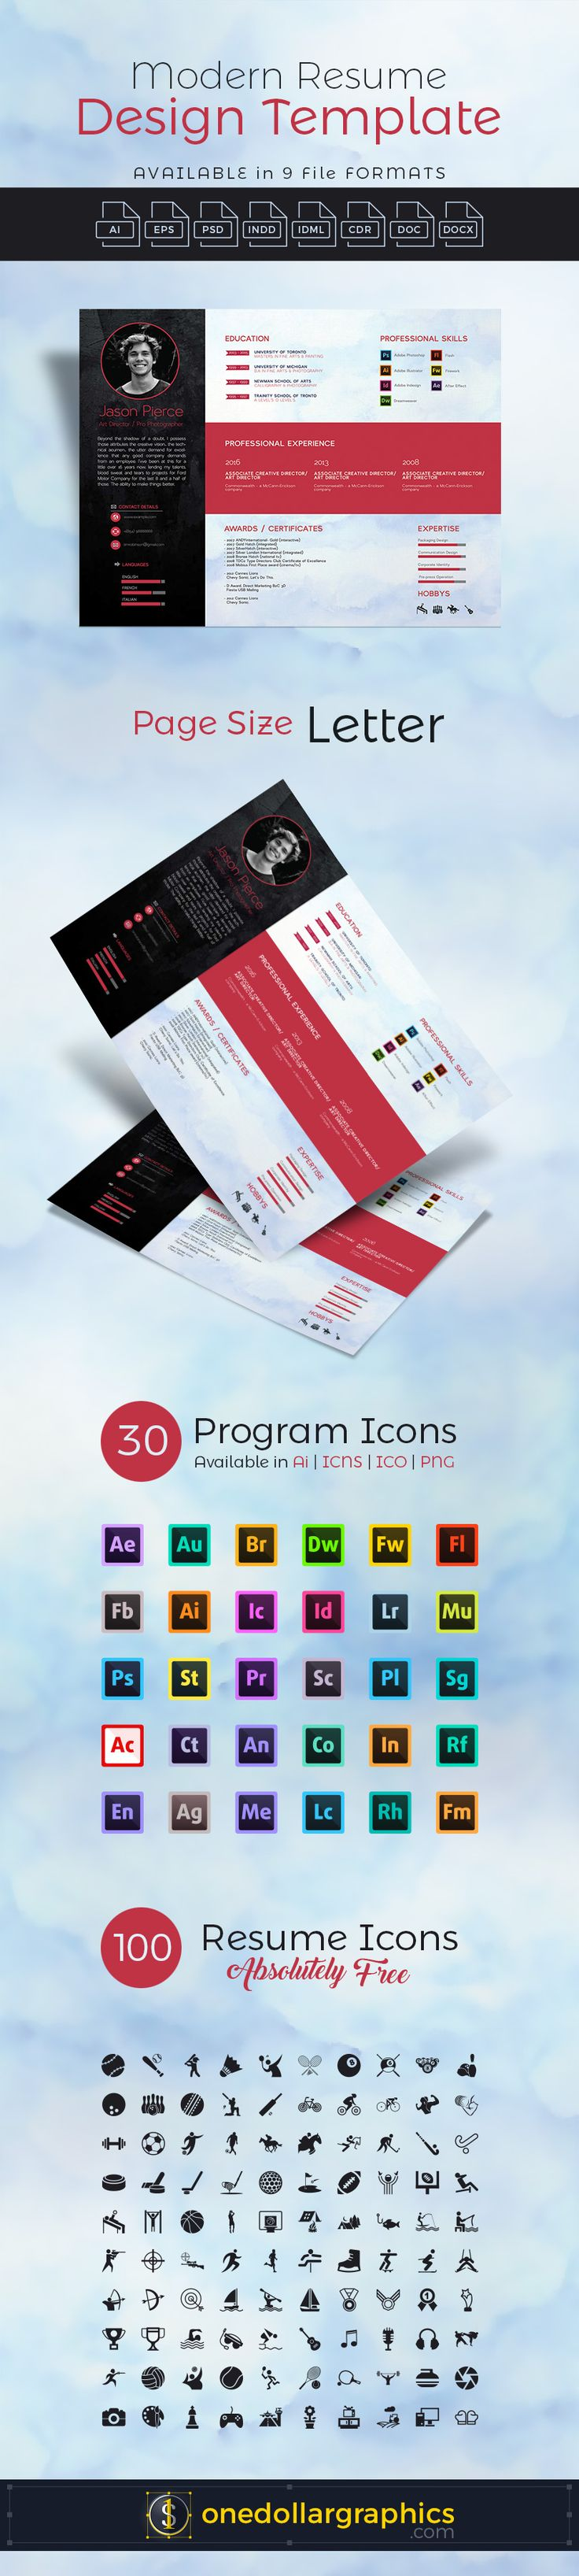 17 Best Resume Indd Images On Pinterest Resume Templates Cover